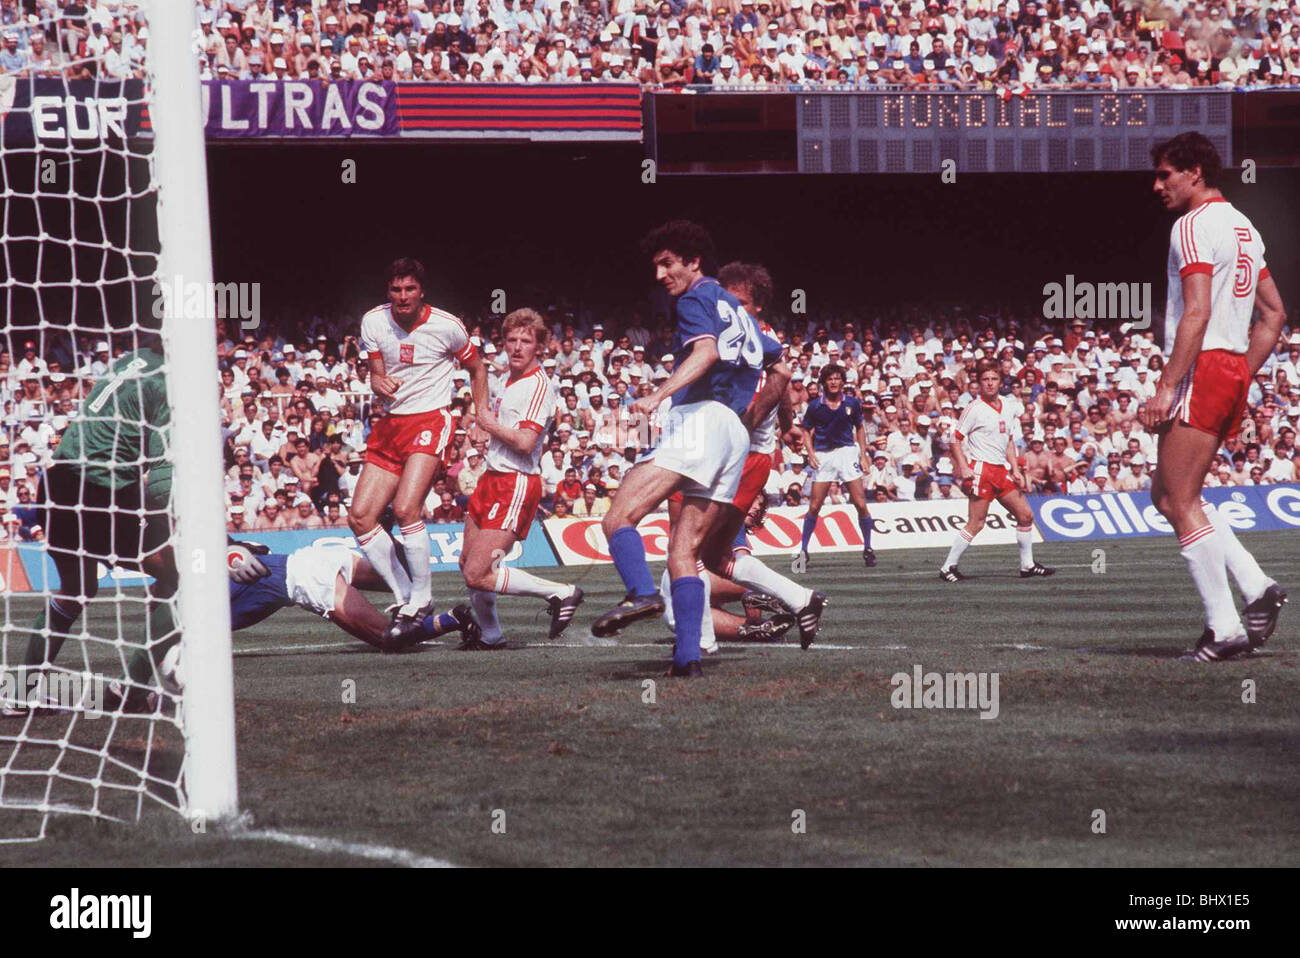 Poland v Italy 1982 World Cup Paolo Rossi scores a goal for italy